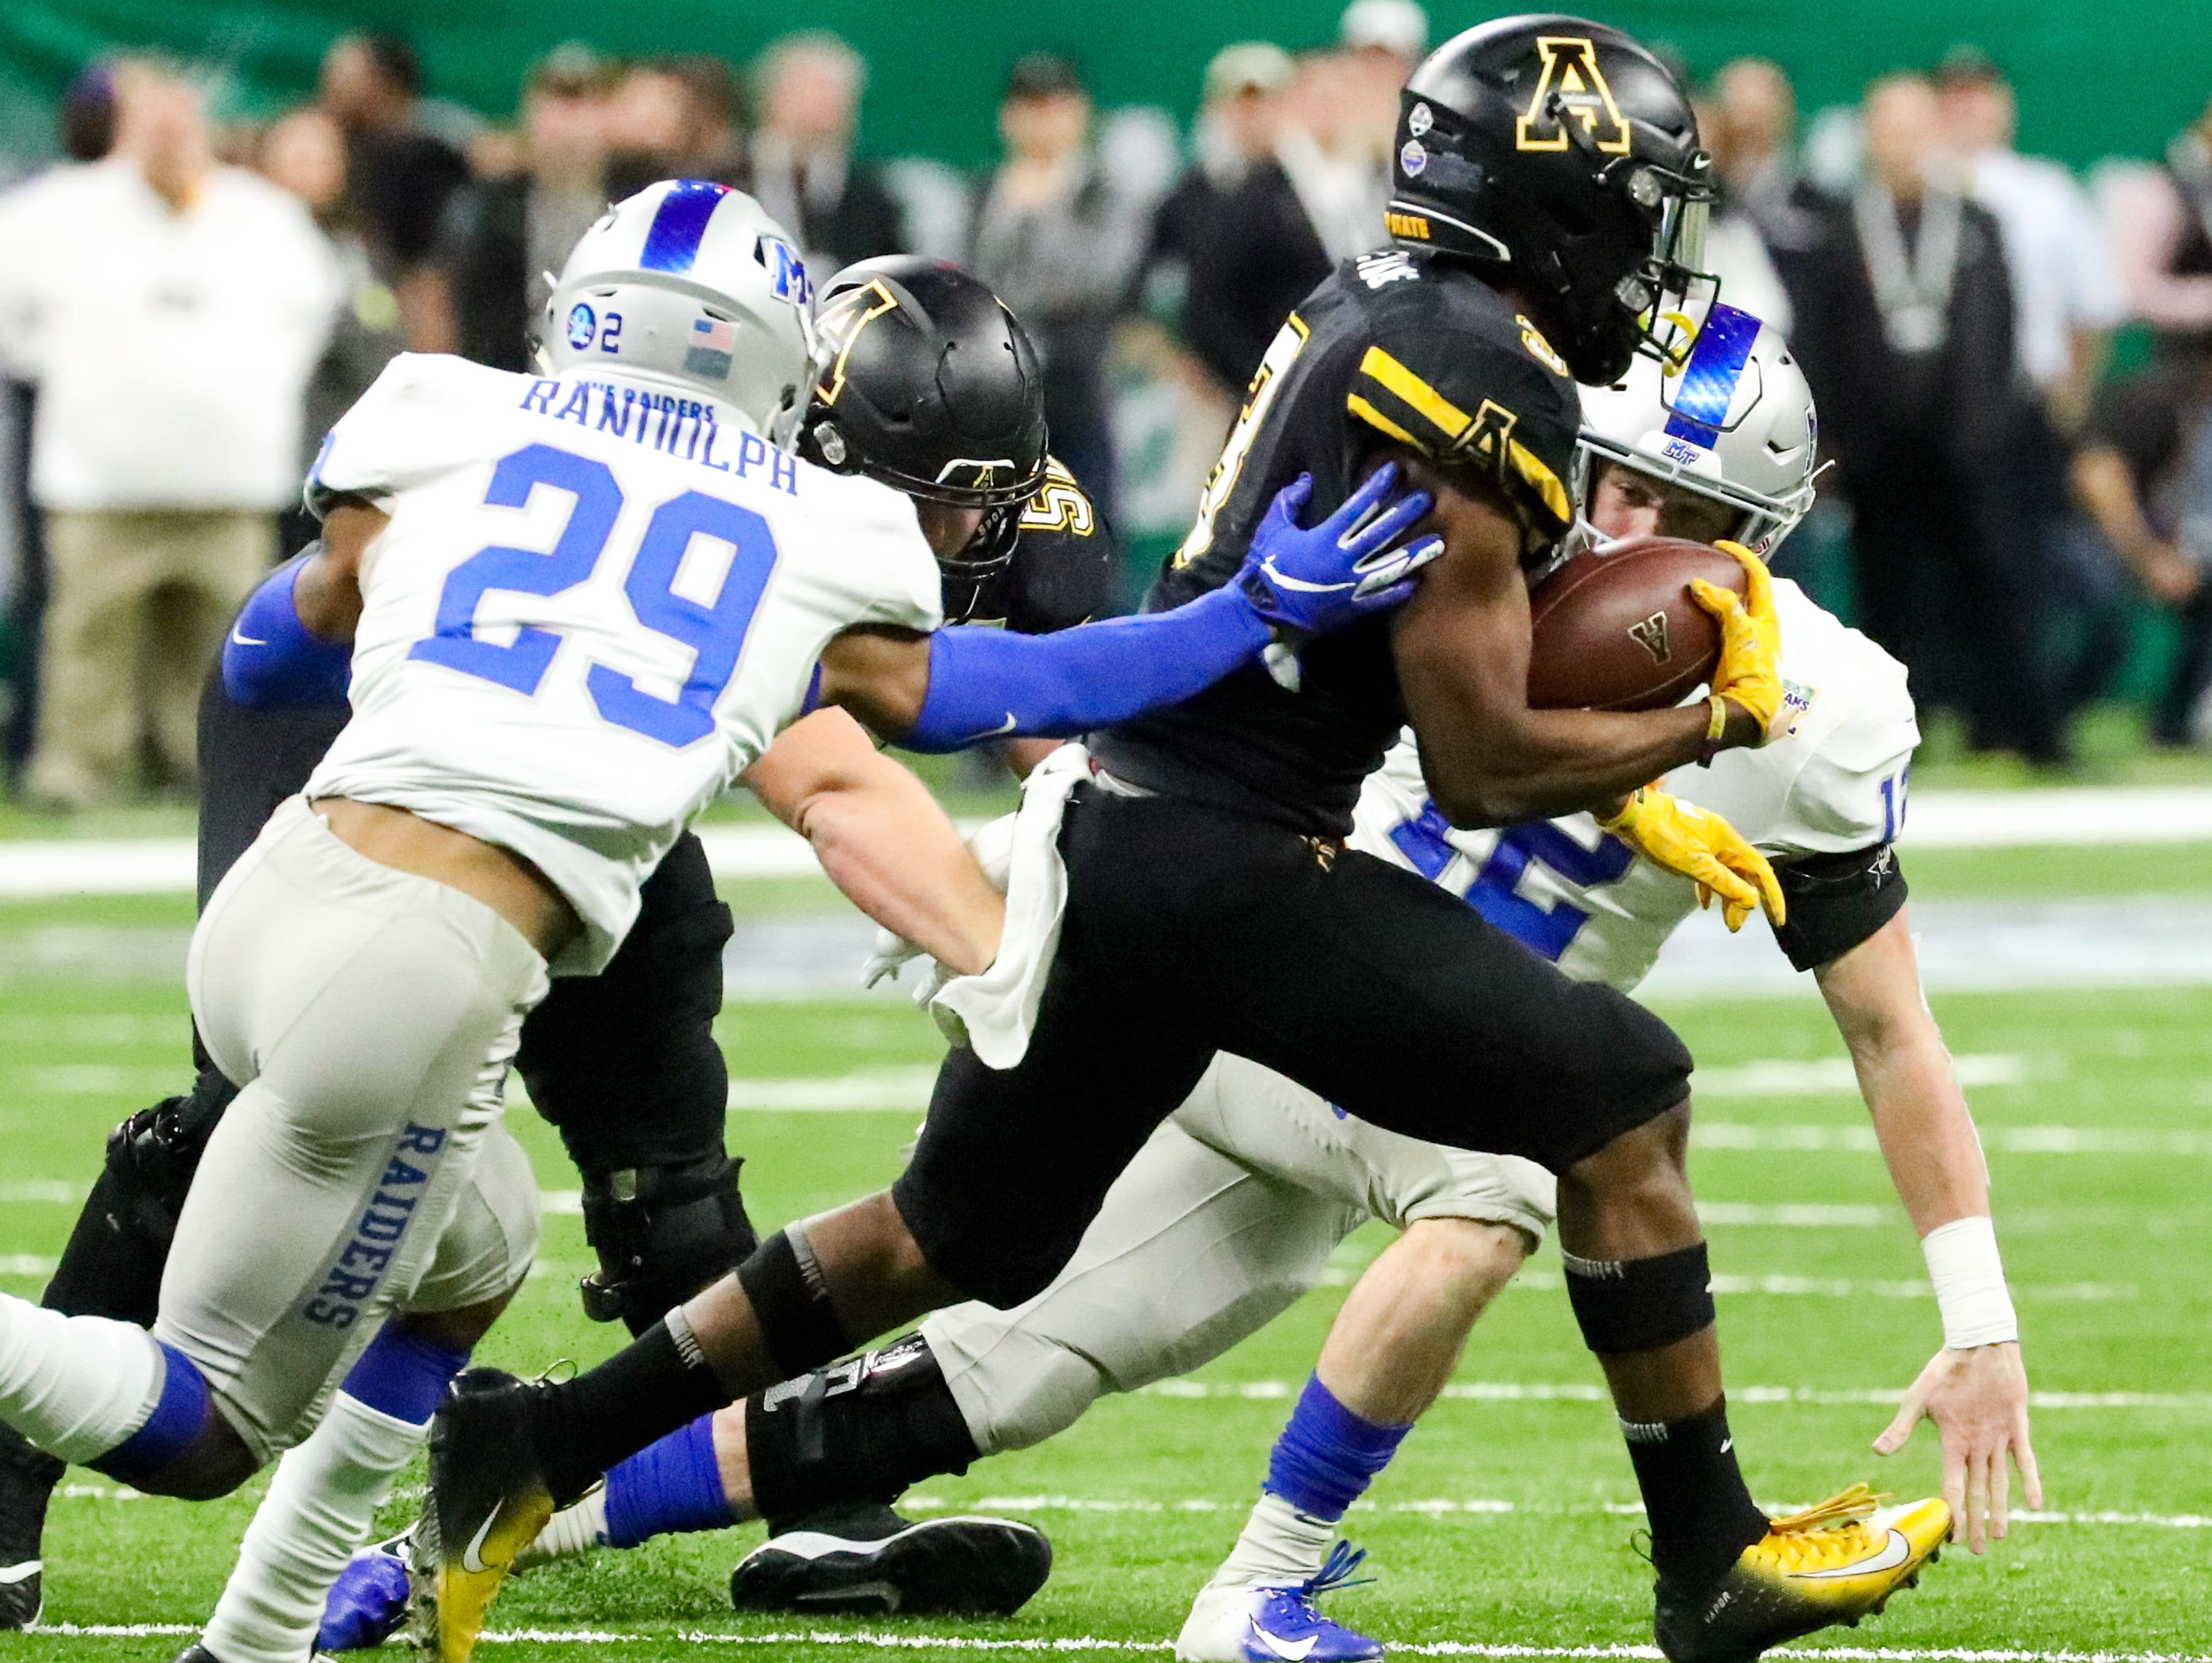 Appalachian State Mountaineers running back Darrynton Evans (3) runs the ball while missing tackles from Middle Tennessee Blue Raiders during the first half at the Mercedes-Benz Superdome Saturday, Dec. 15, 2018, in New Orleans, La.